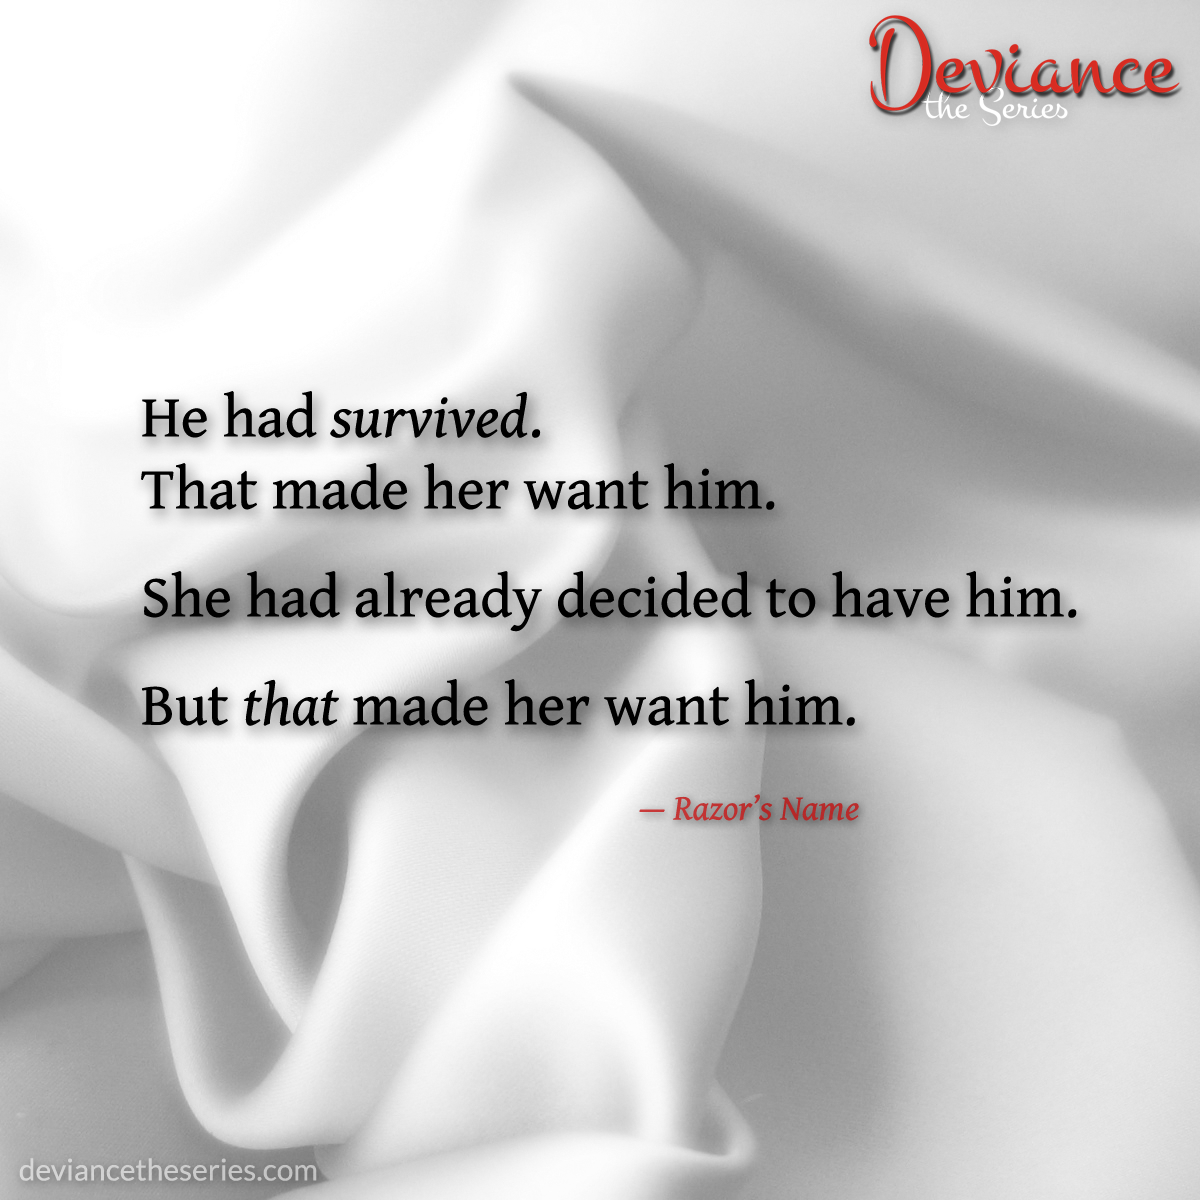 Deviance the Series, Volume 1: Razor's Name